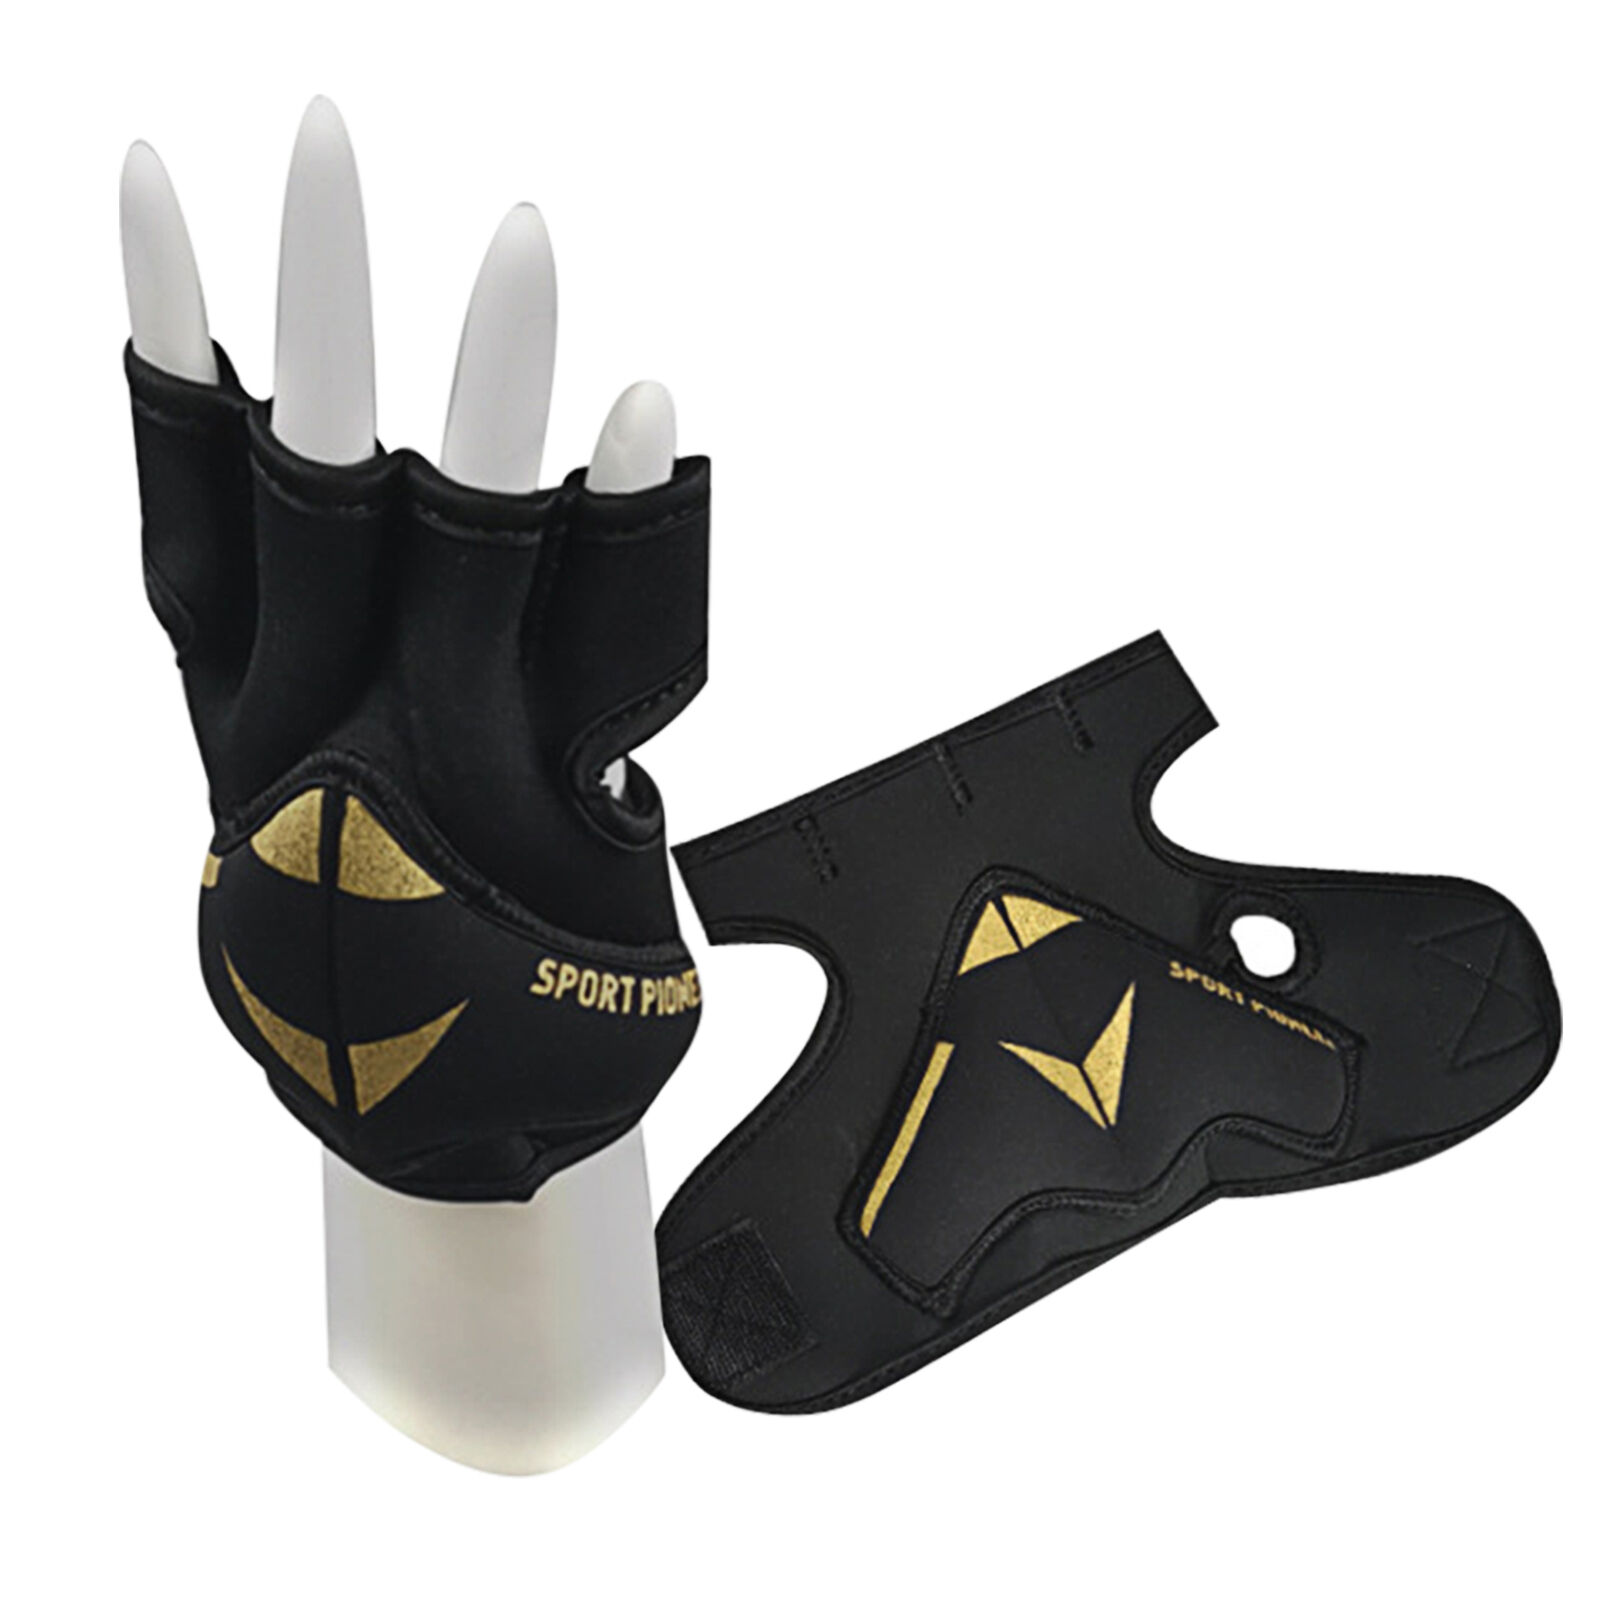 2LB Boxing Running Fitness Weighted Gloves With Wrist Support Breathable